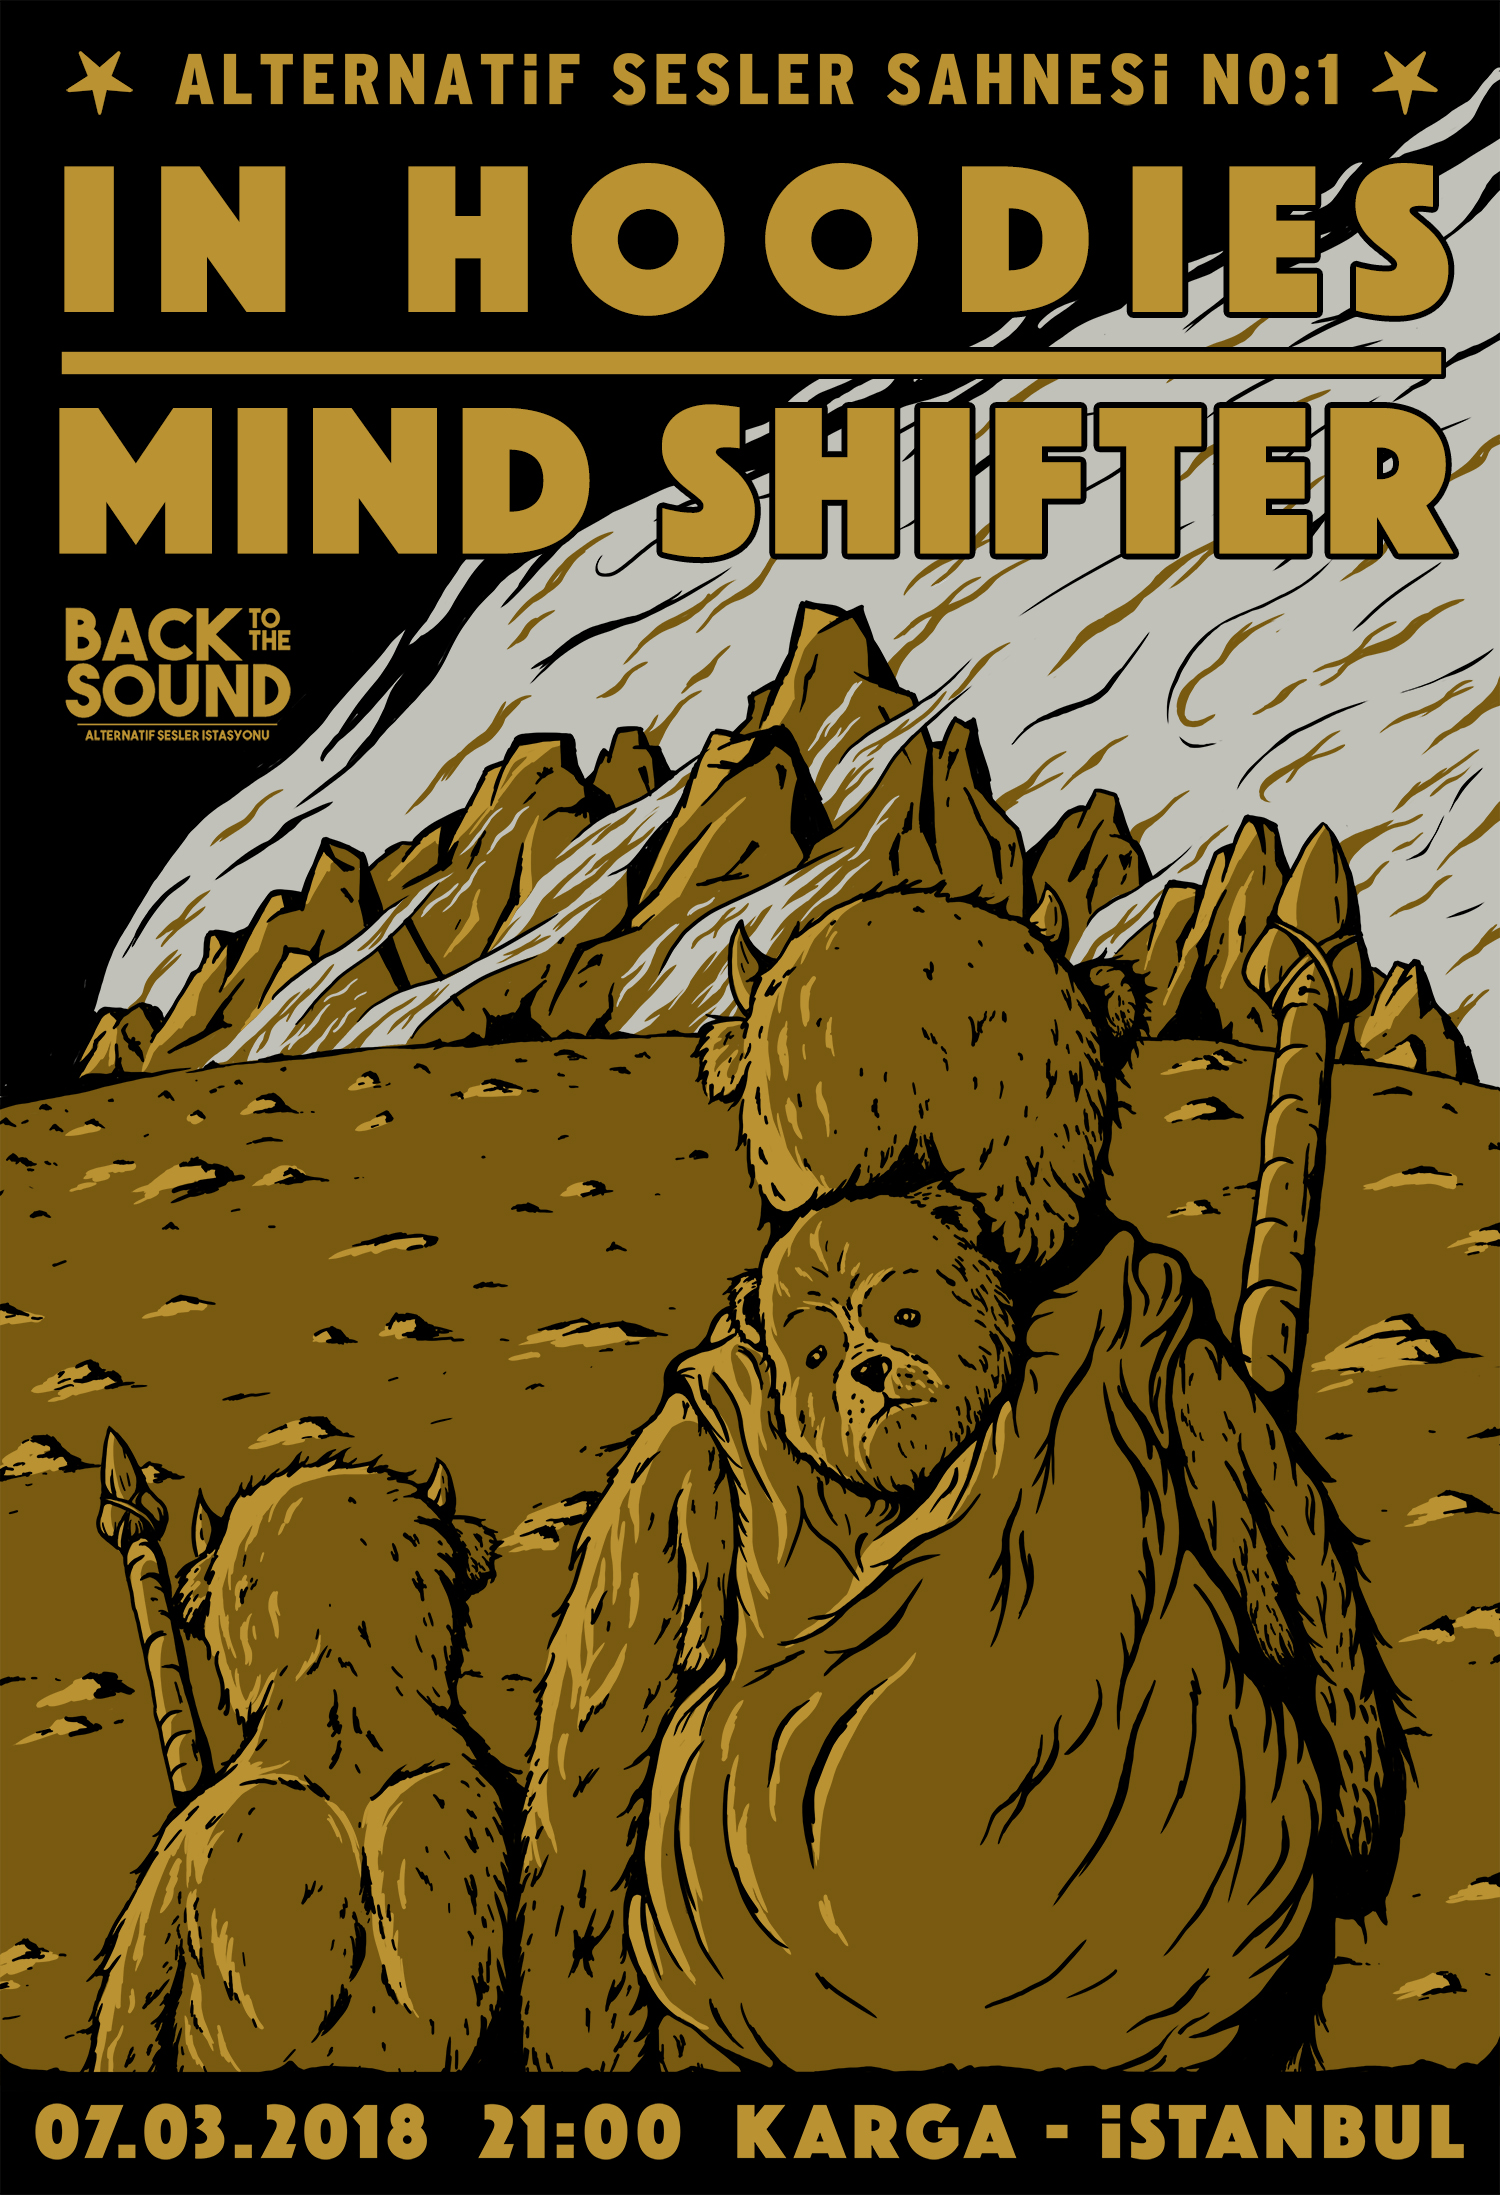 IN HOODIES & MIND SHIFTER